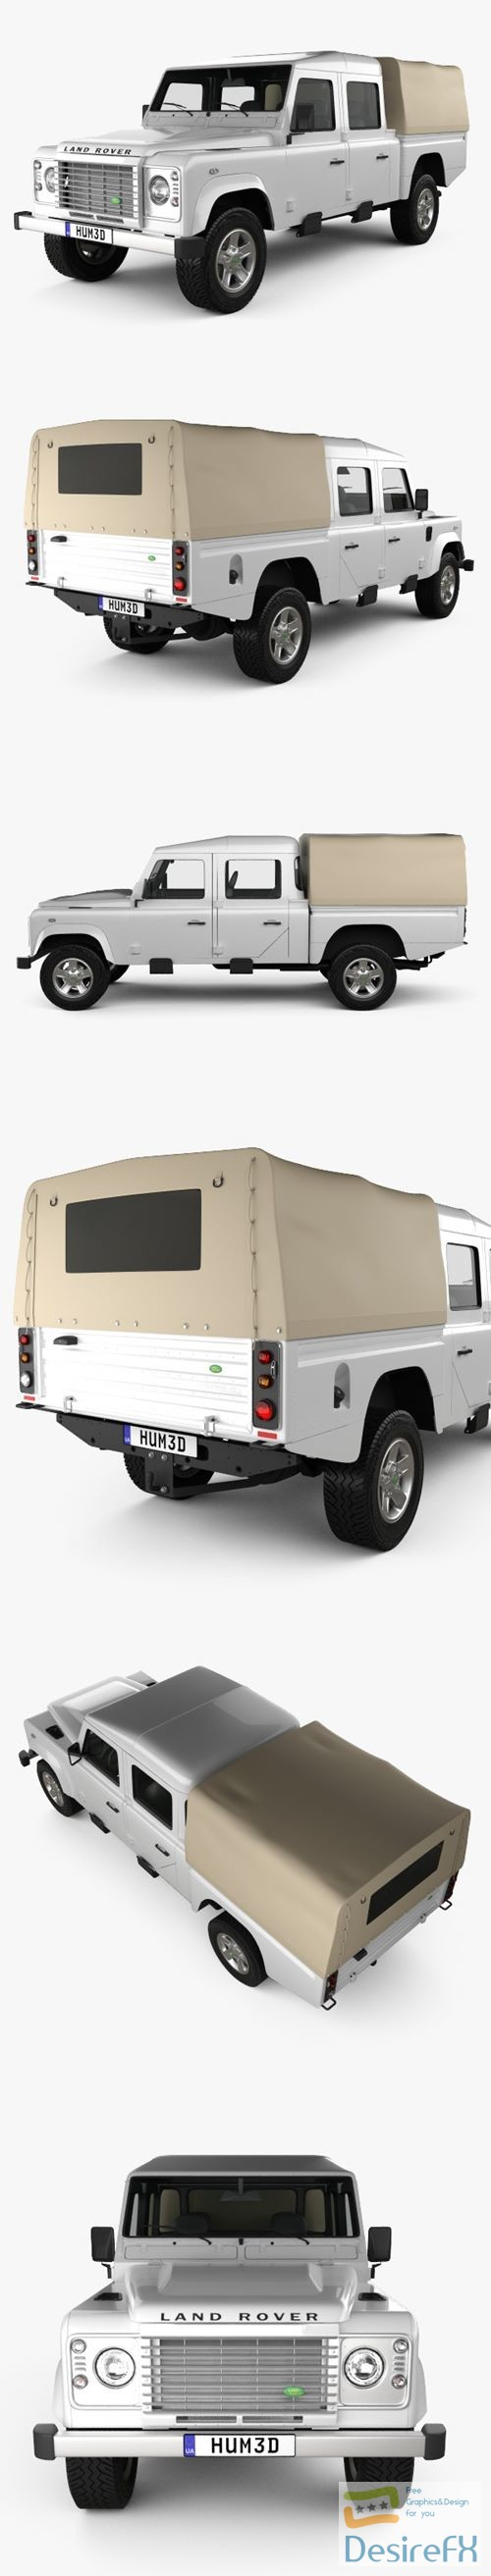 3d-models - Land Rover Defender 130 High Capacity DoubleCab PickUp 2011 3D Model